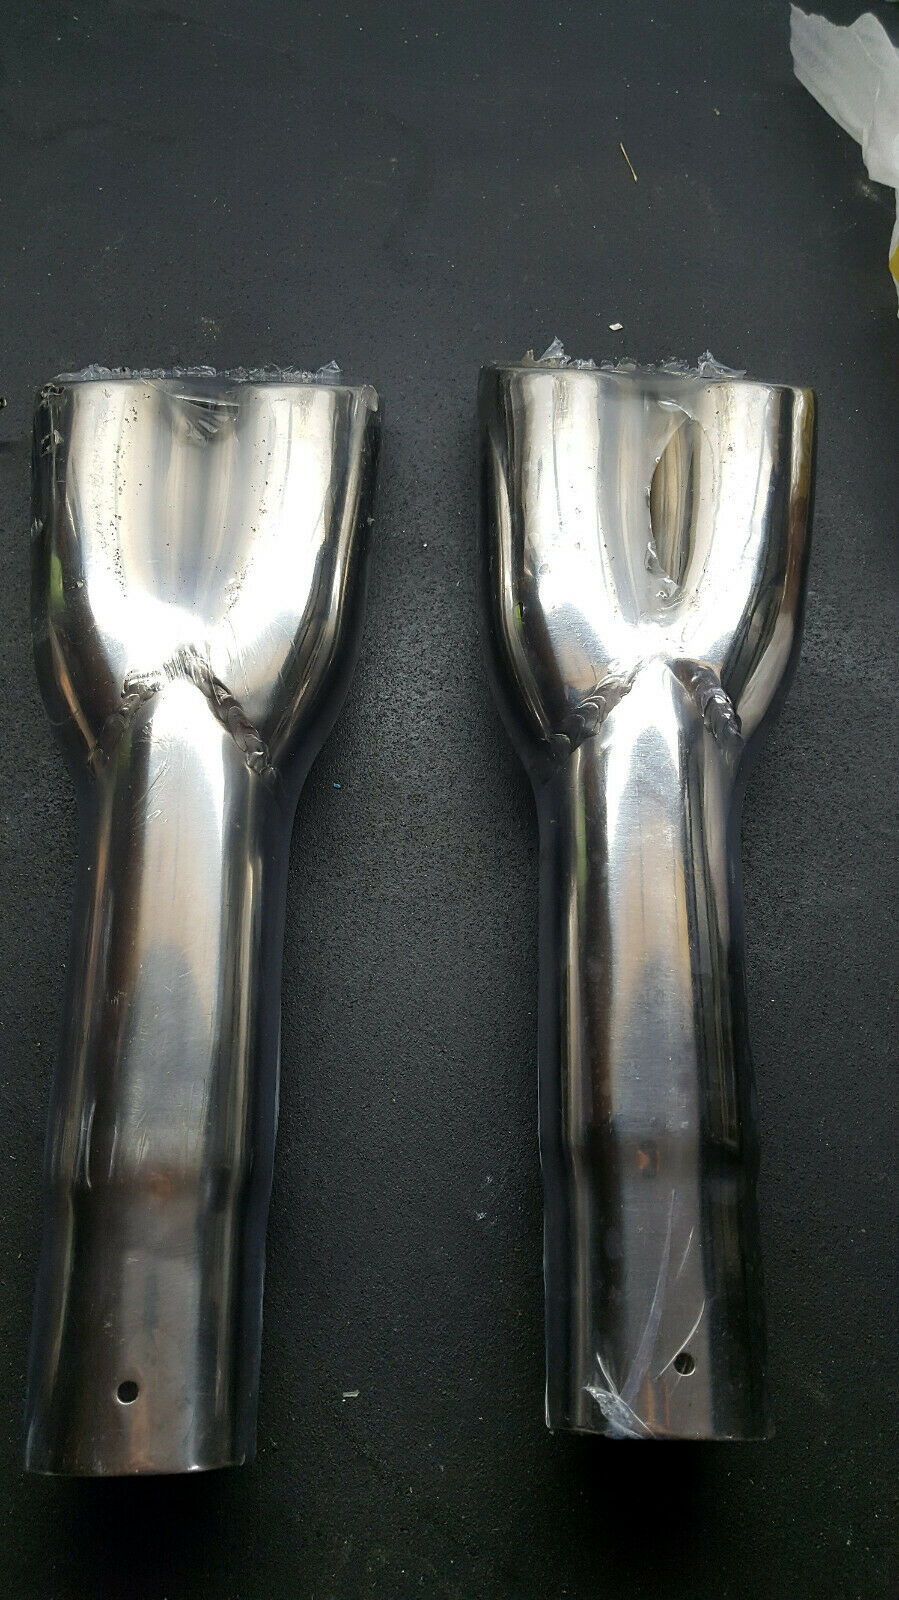 NEW DUAL EXHAUST PAIR ROLLED TIPS MUSTANG COUGAR MACH 1 1967 1968 1969 MACH 1